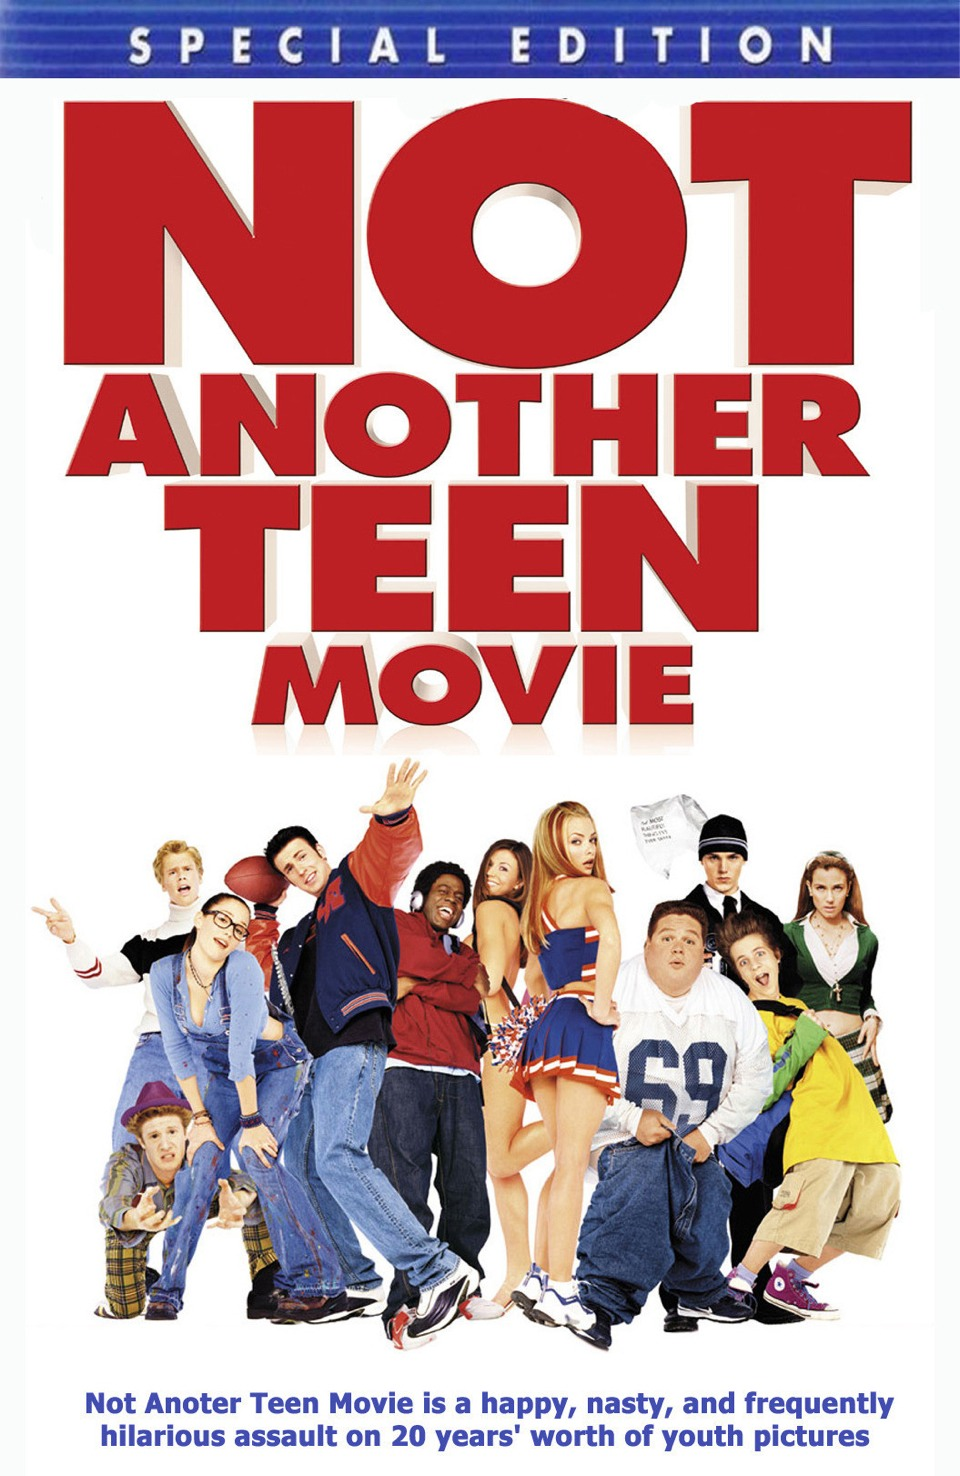 Not another Teen Movie 😂